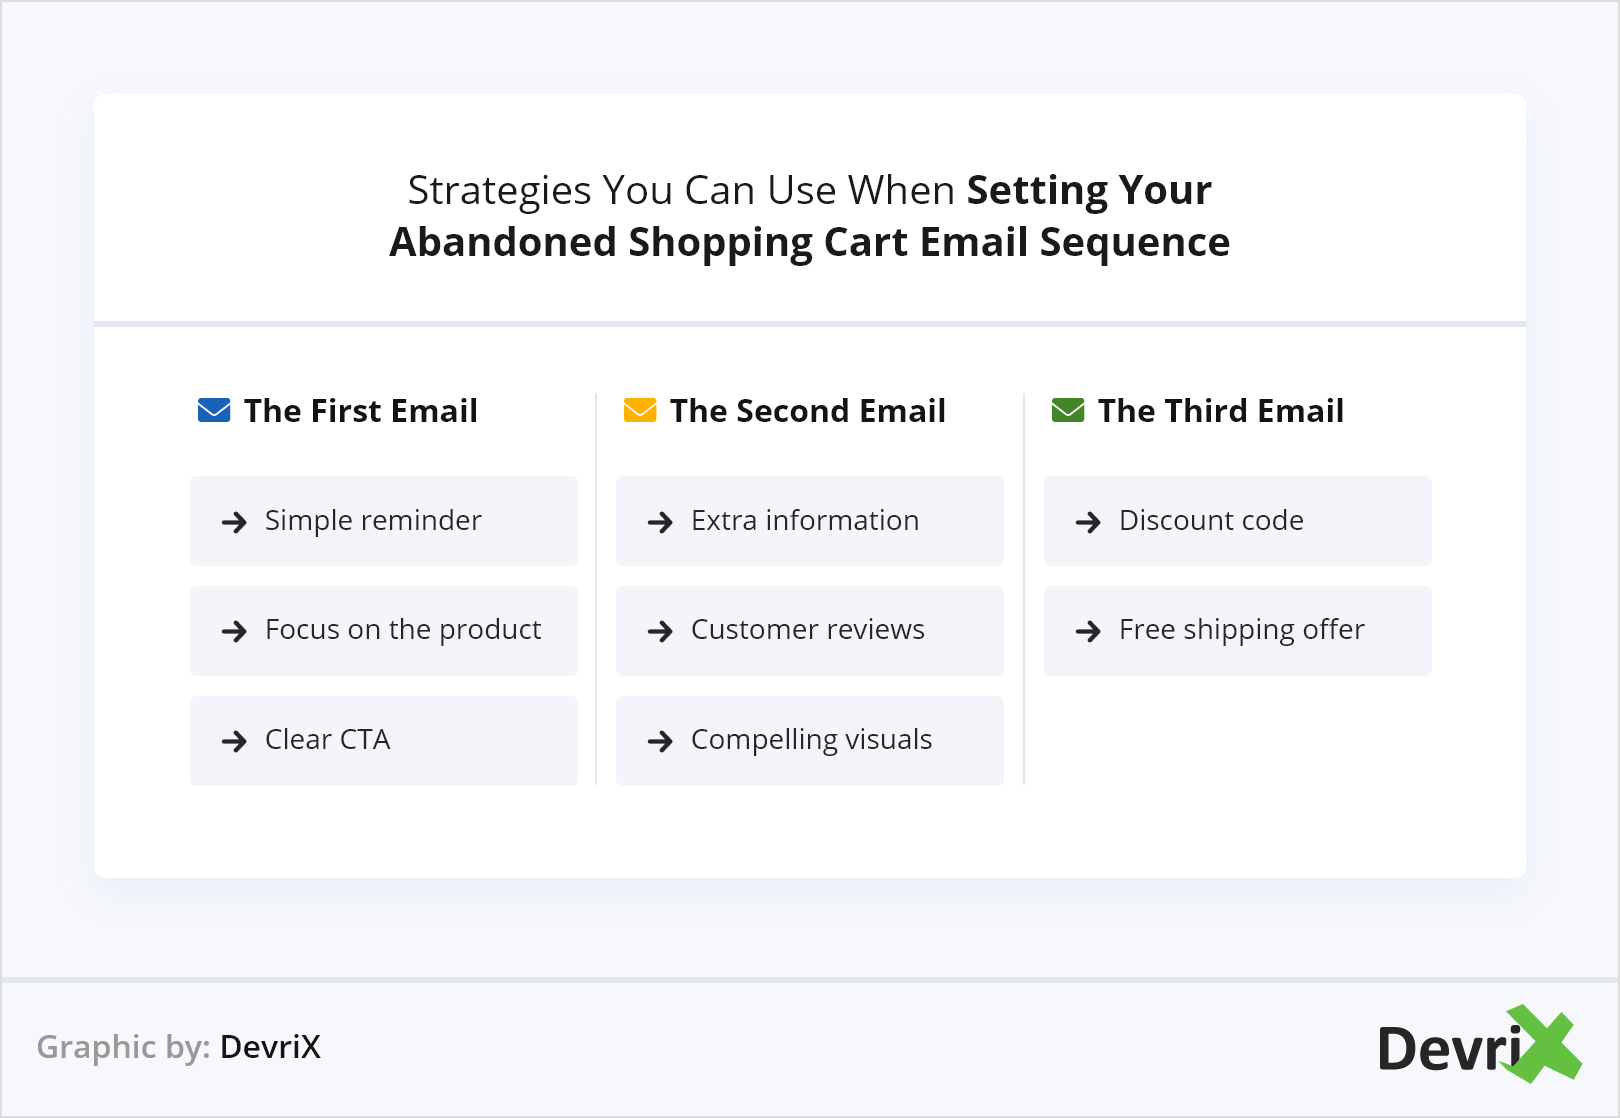 Strategies You Can Use When Setting Your Abandoned Shopping Cart Email Sequence